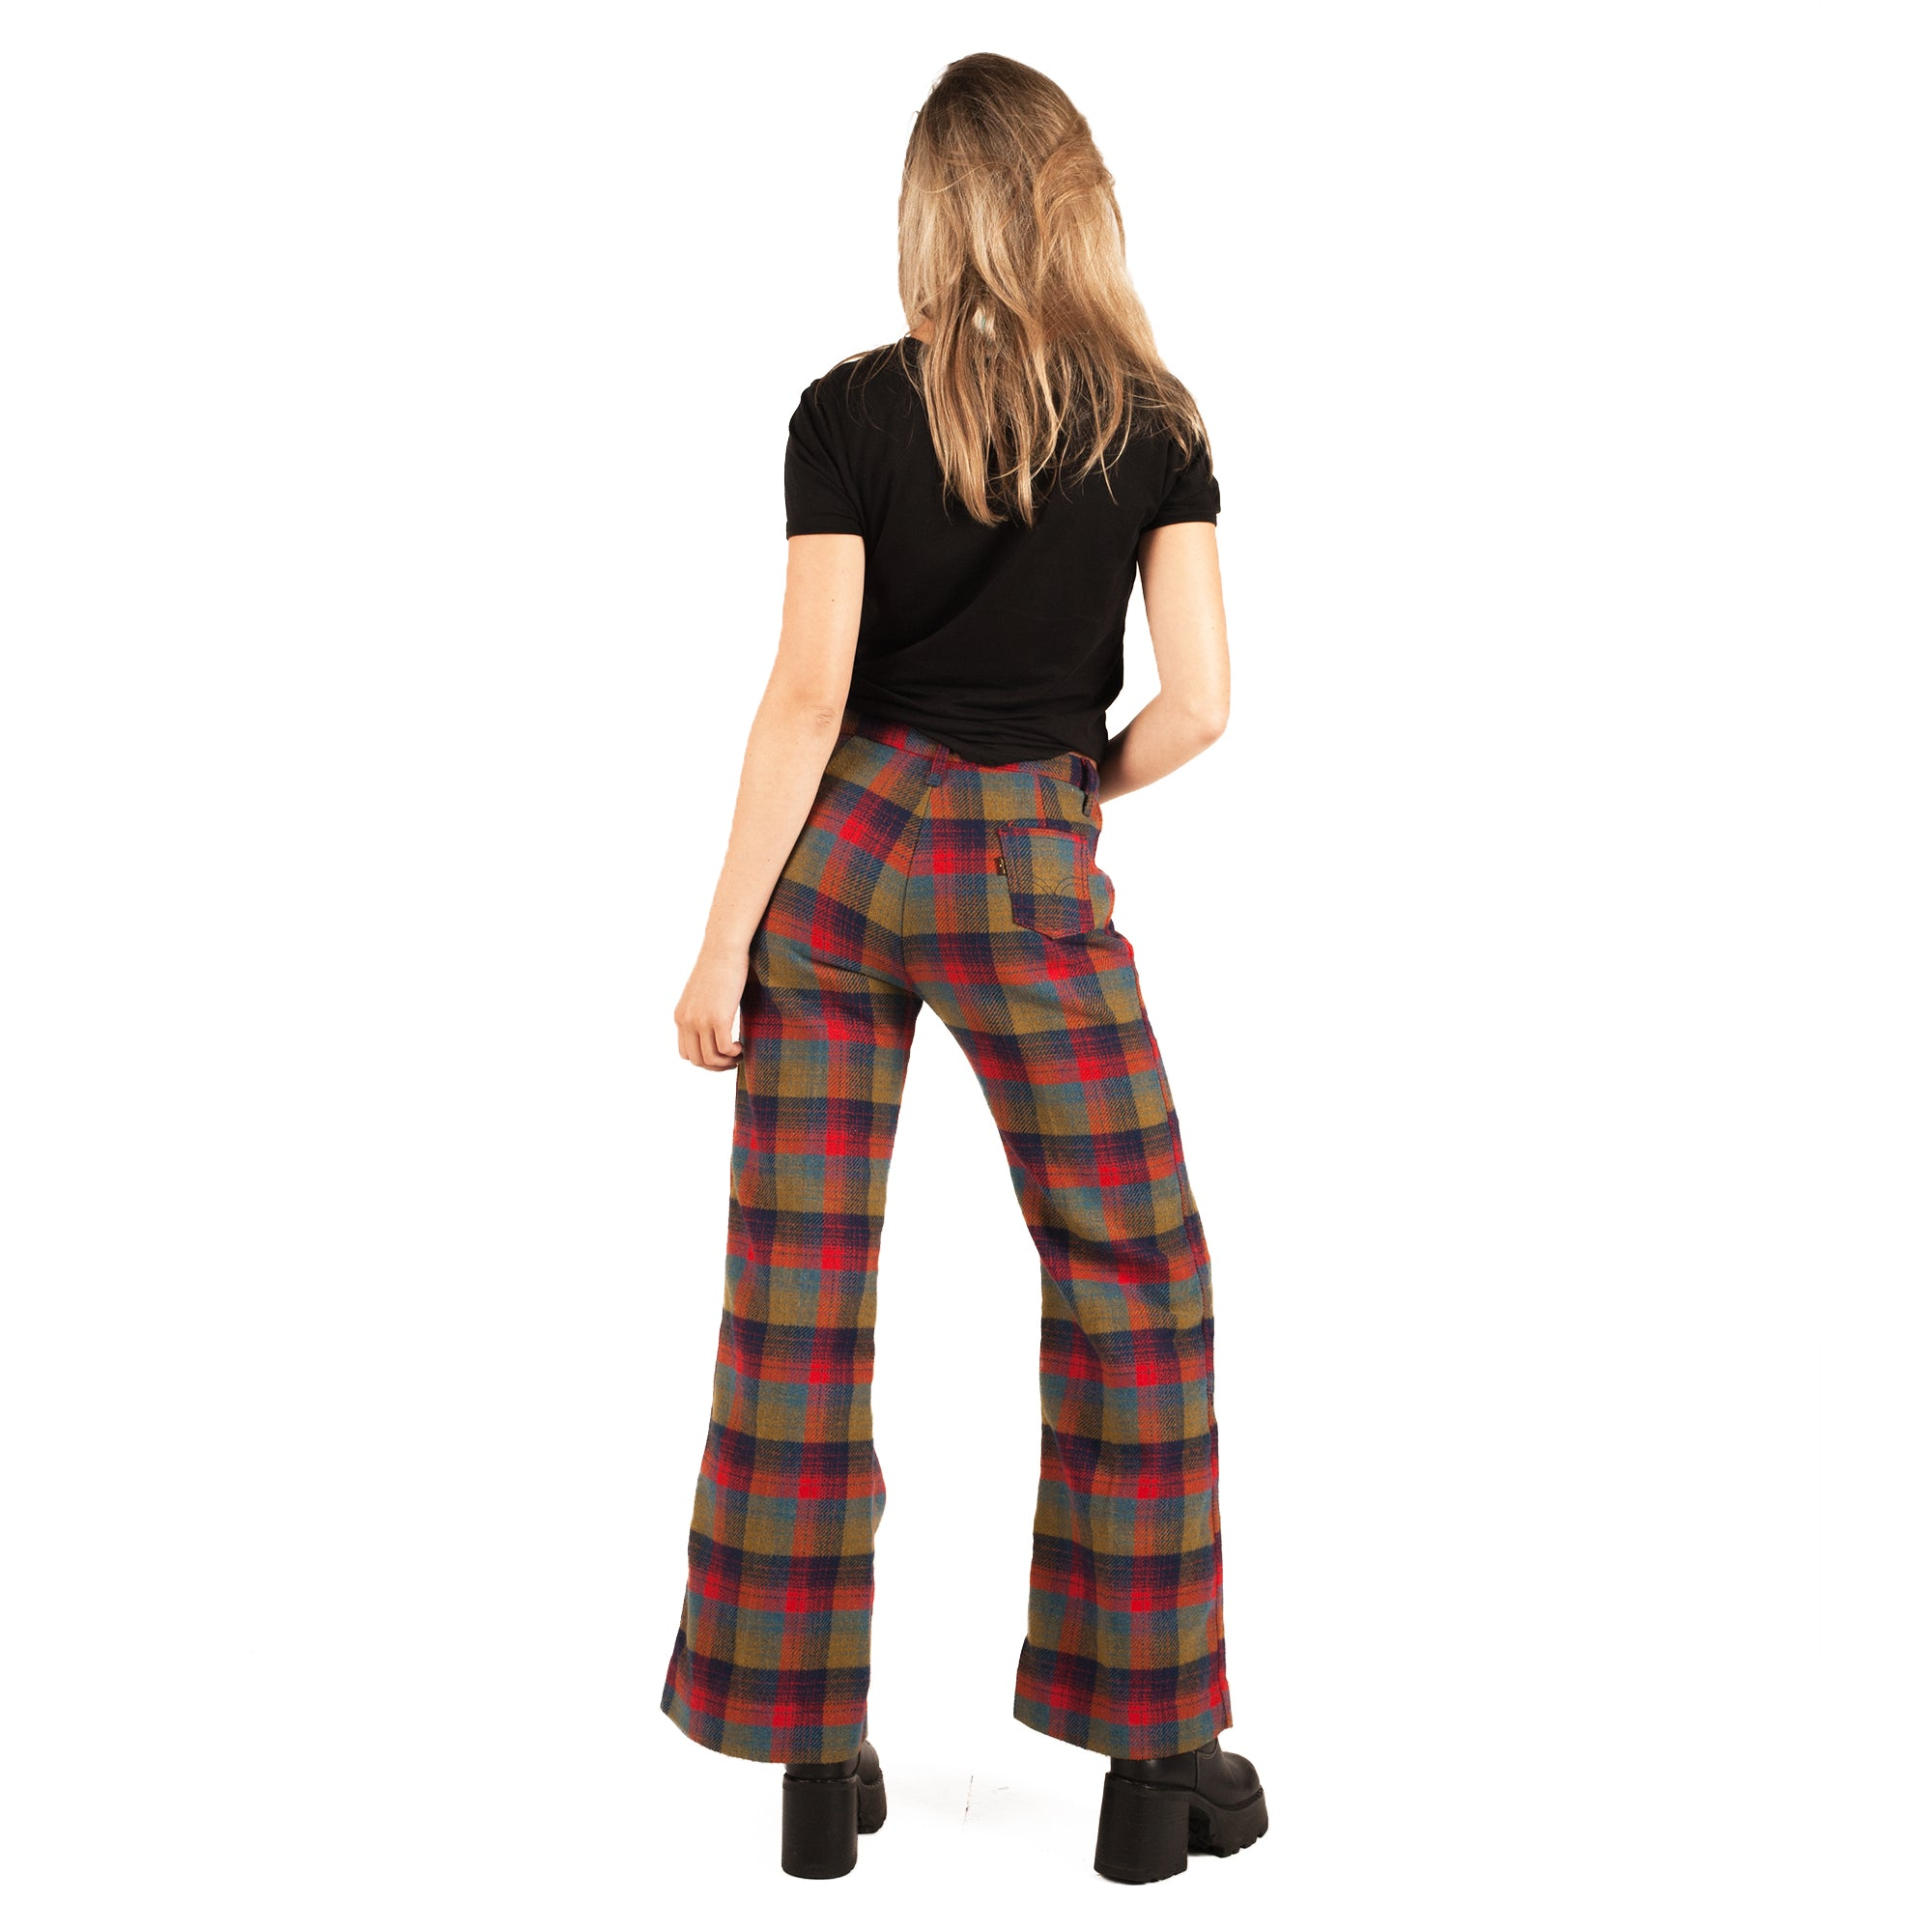 Levis Flared Trousers (Plaid) UK 12